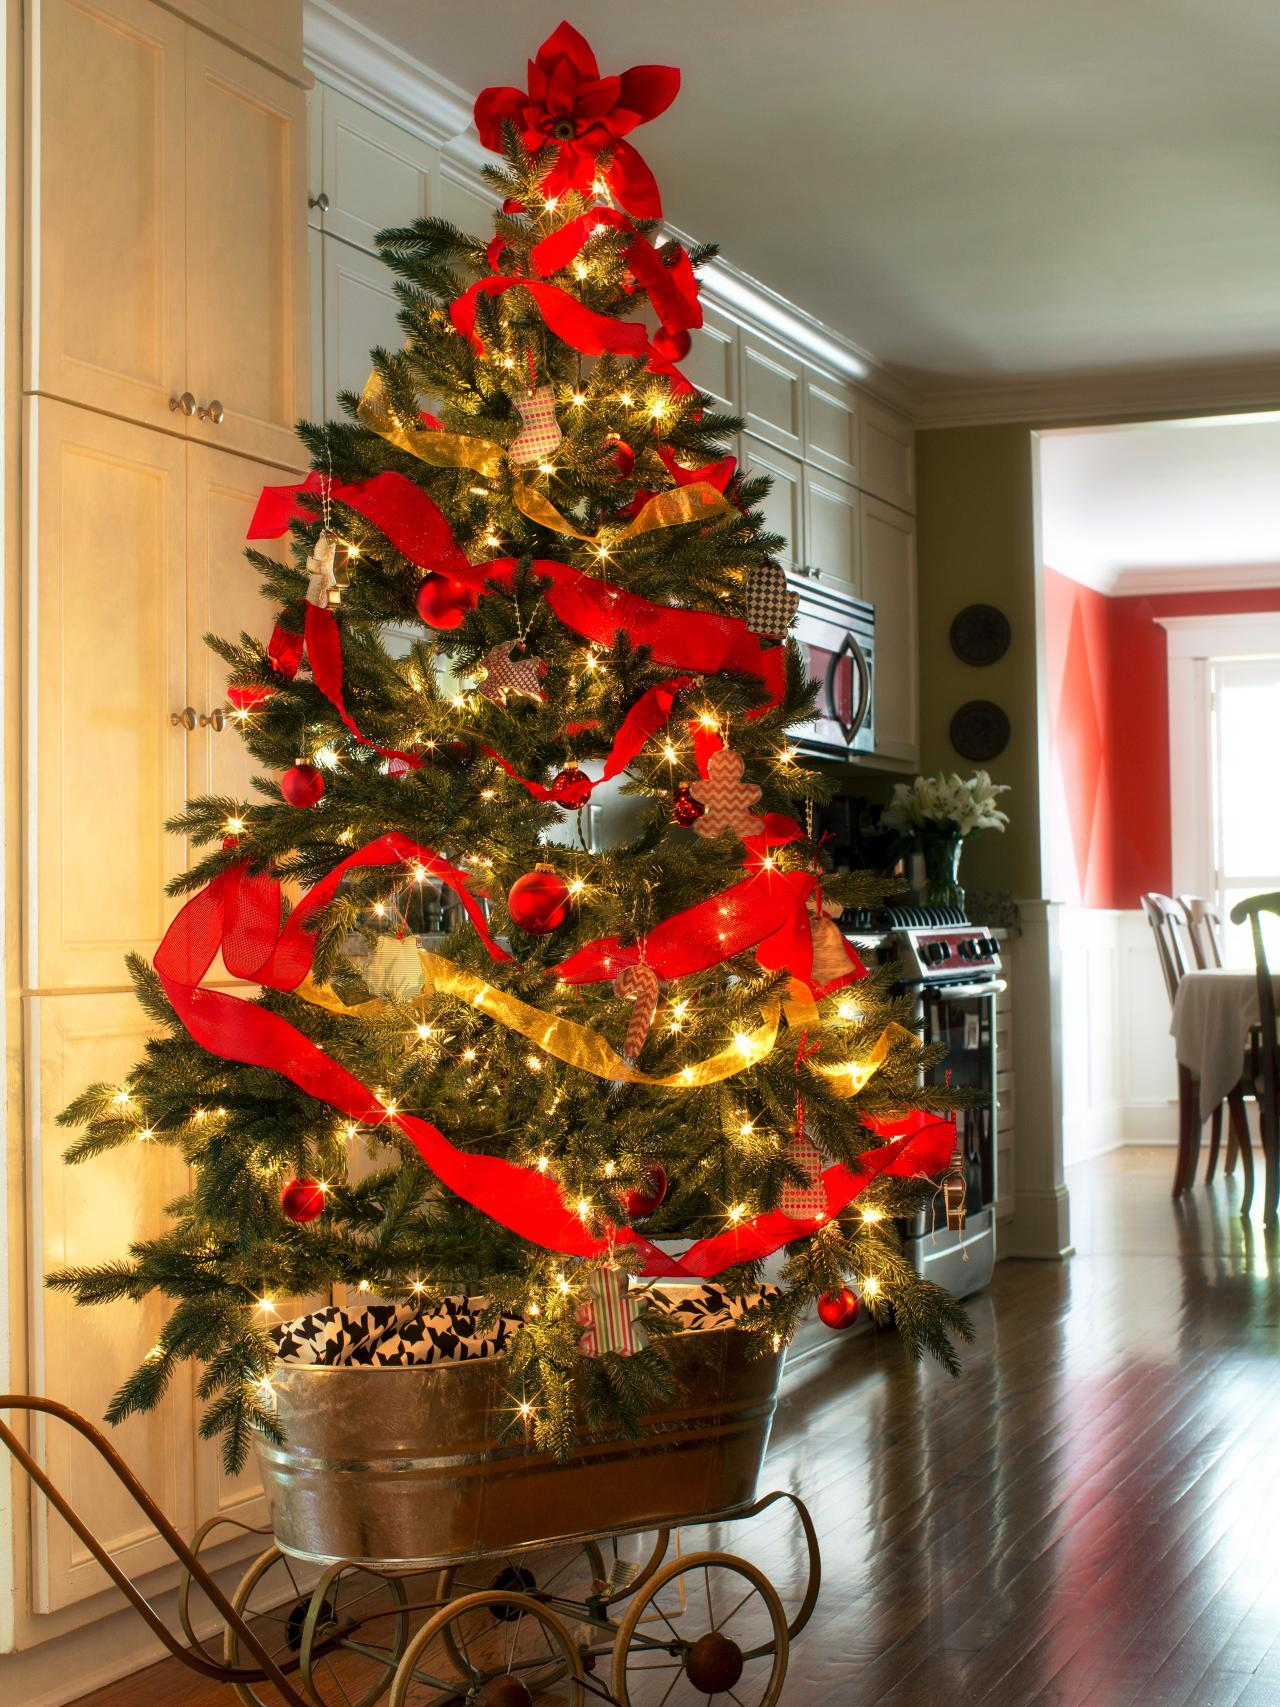 How to Decorate a Christmas Tree   HGTV's Decorating & Design Blog ...